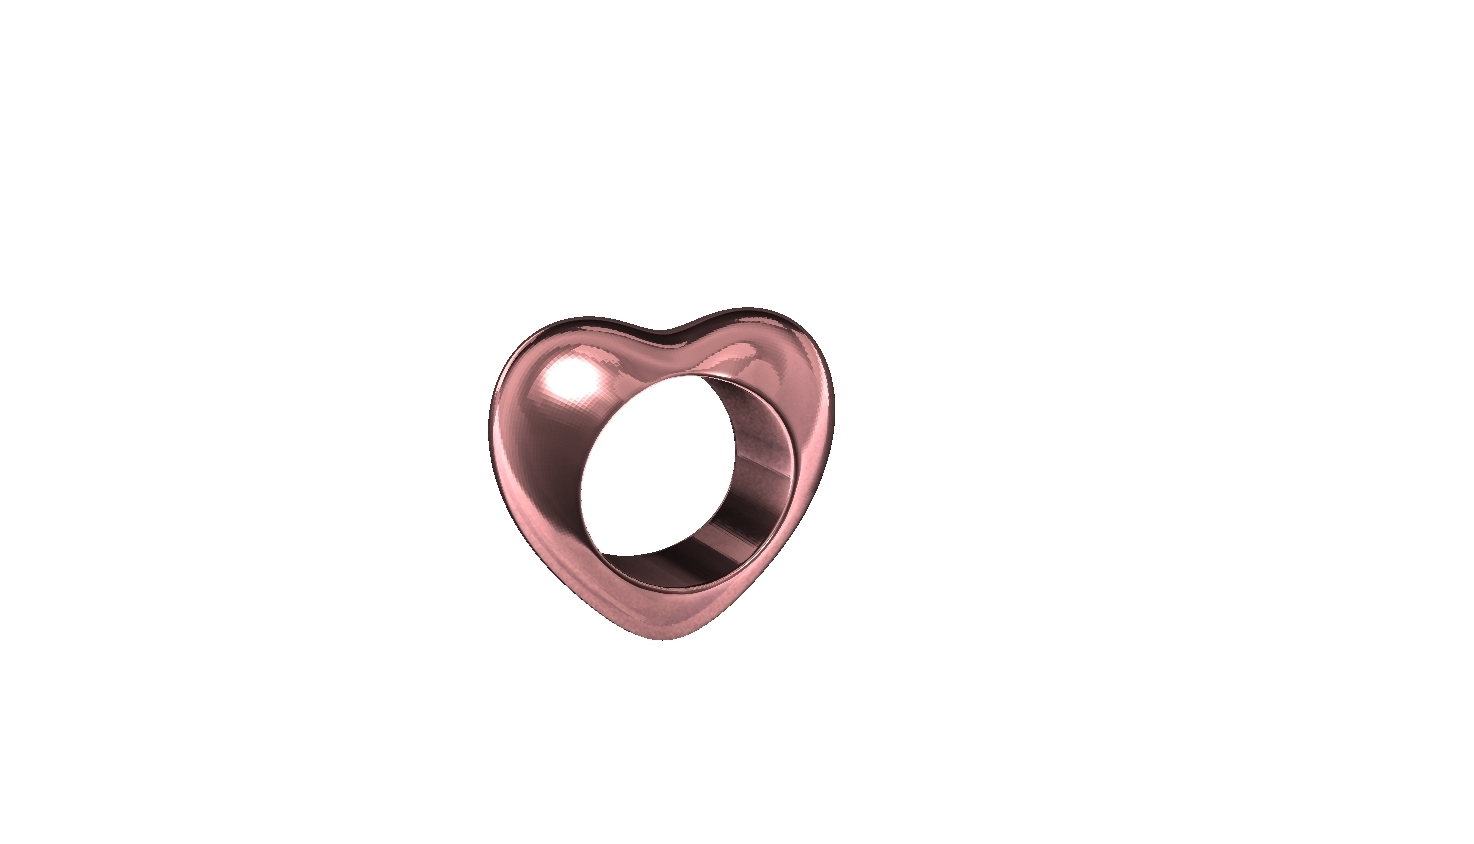 ZBrush Document.jpg Download STL file LOVE RING and Mold Simply heart ring and mold . contest - #ANYCUBIC3D • 3D printer model, gaaraa